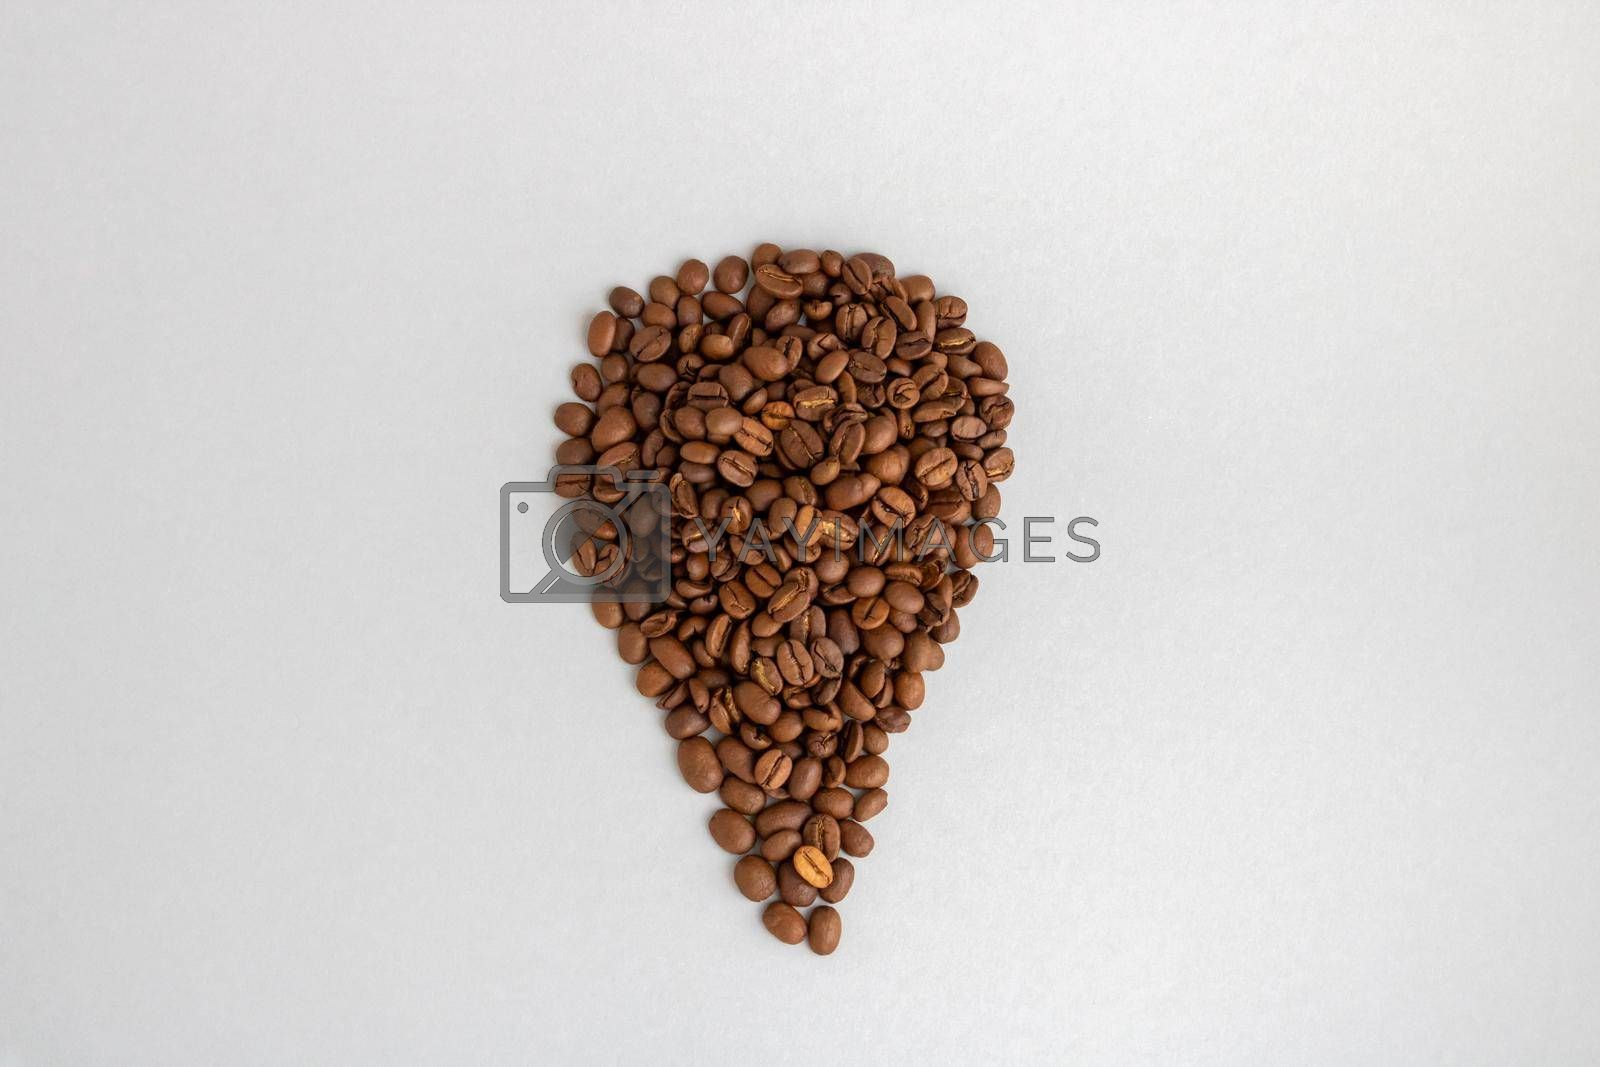 Coffee beans. Isolated on a gray background in the shape of a drop.